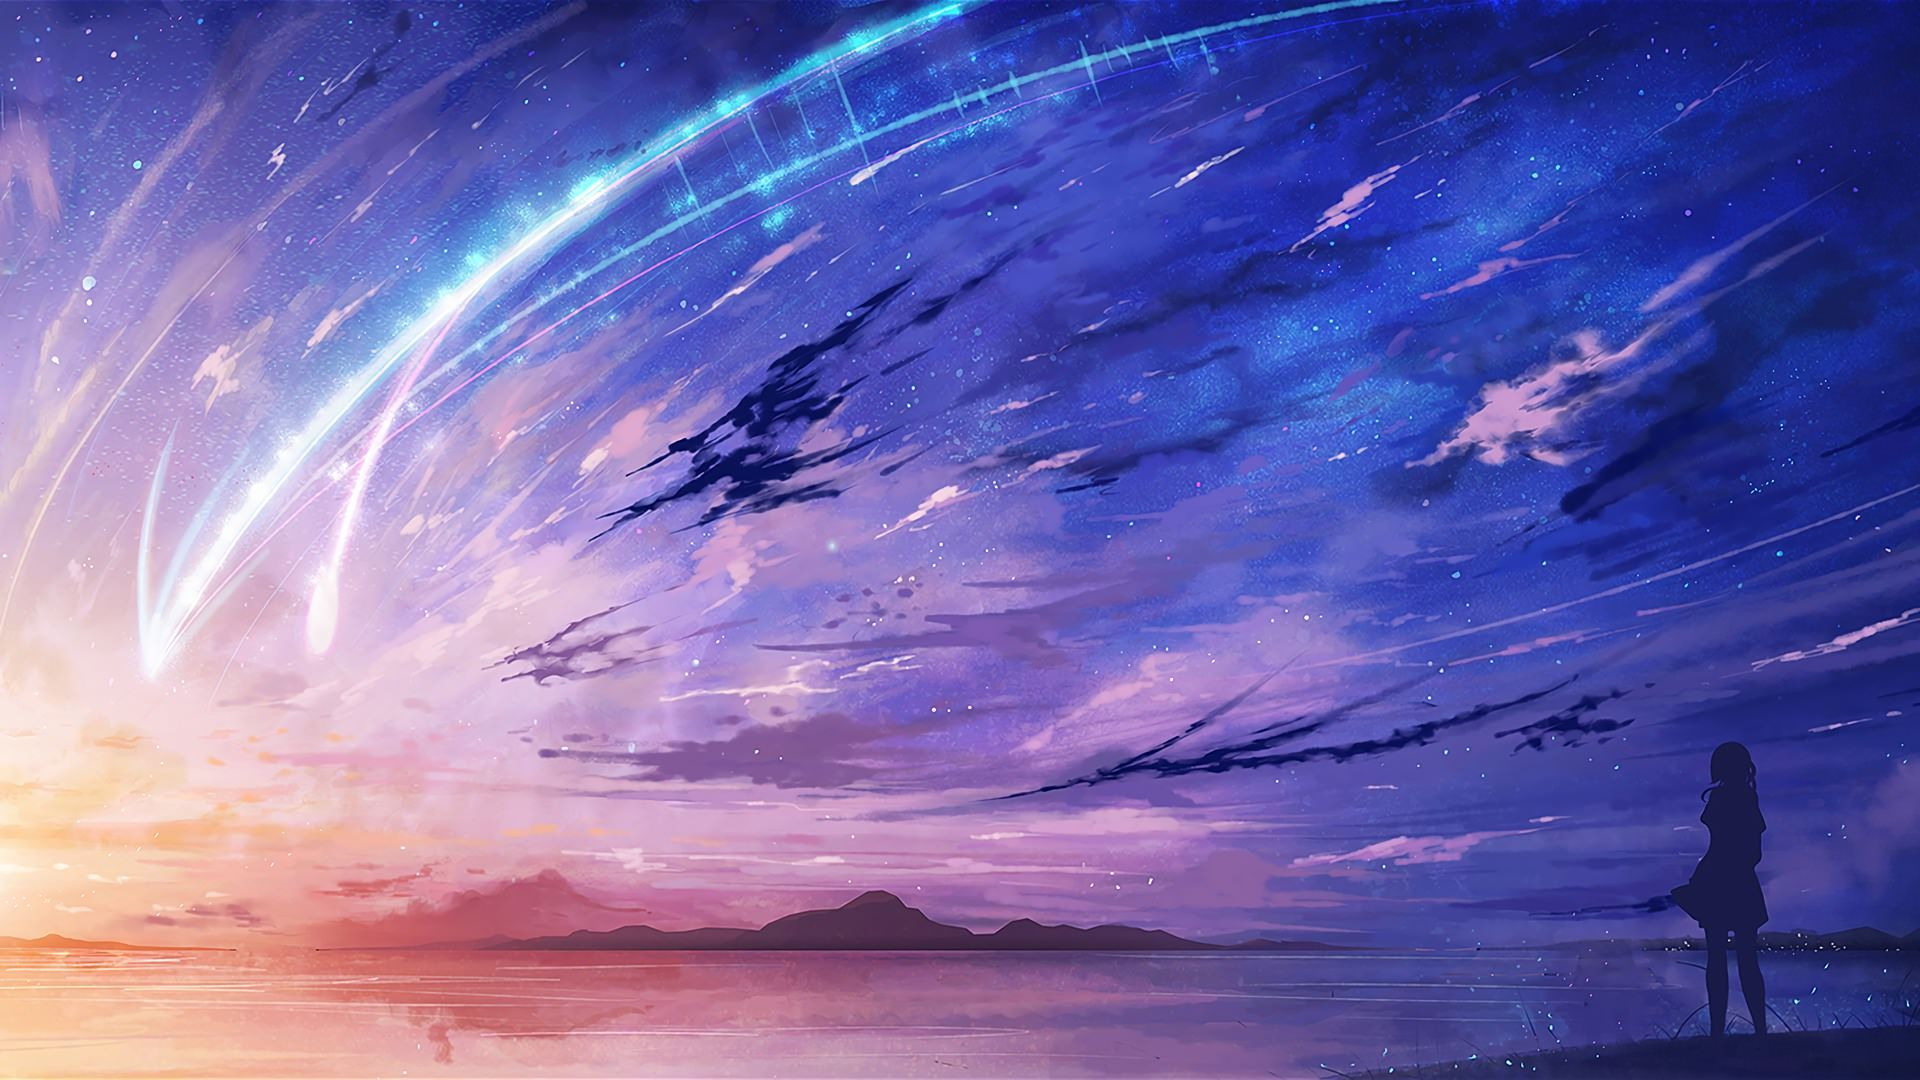 Your Name Anime Landscape Wallpapers Top Free Your Name Anime Landscape Backgrounds Wallpaperaccess Anime Scenery Scenery Wallpaper Landscape Wallpaper